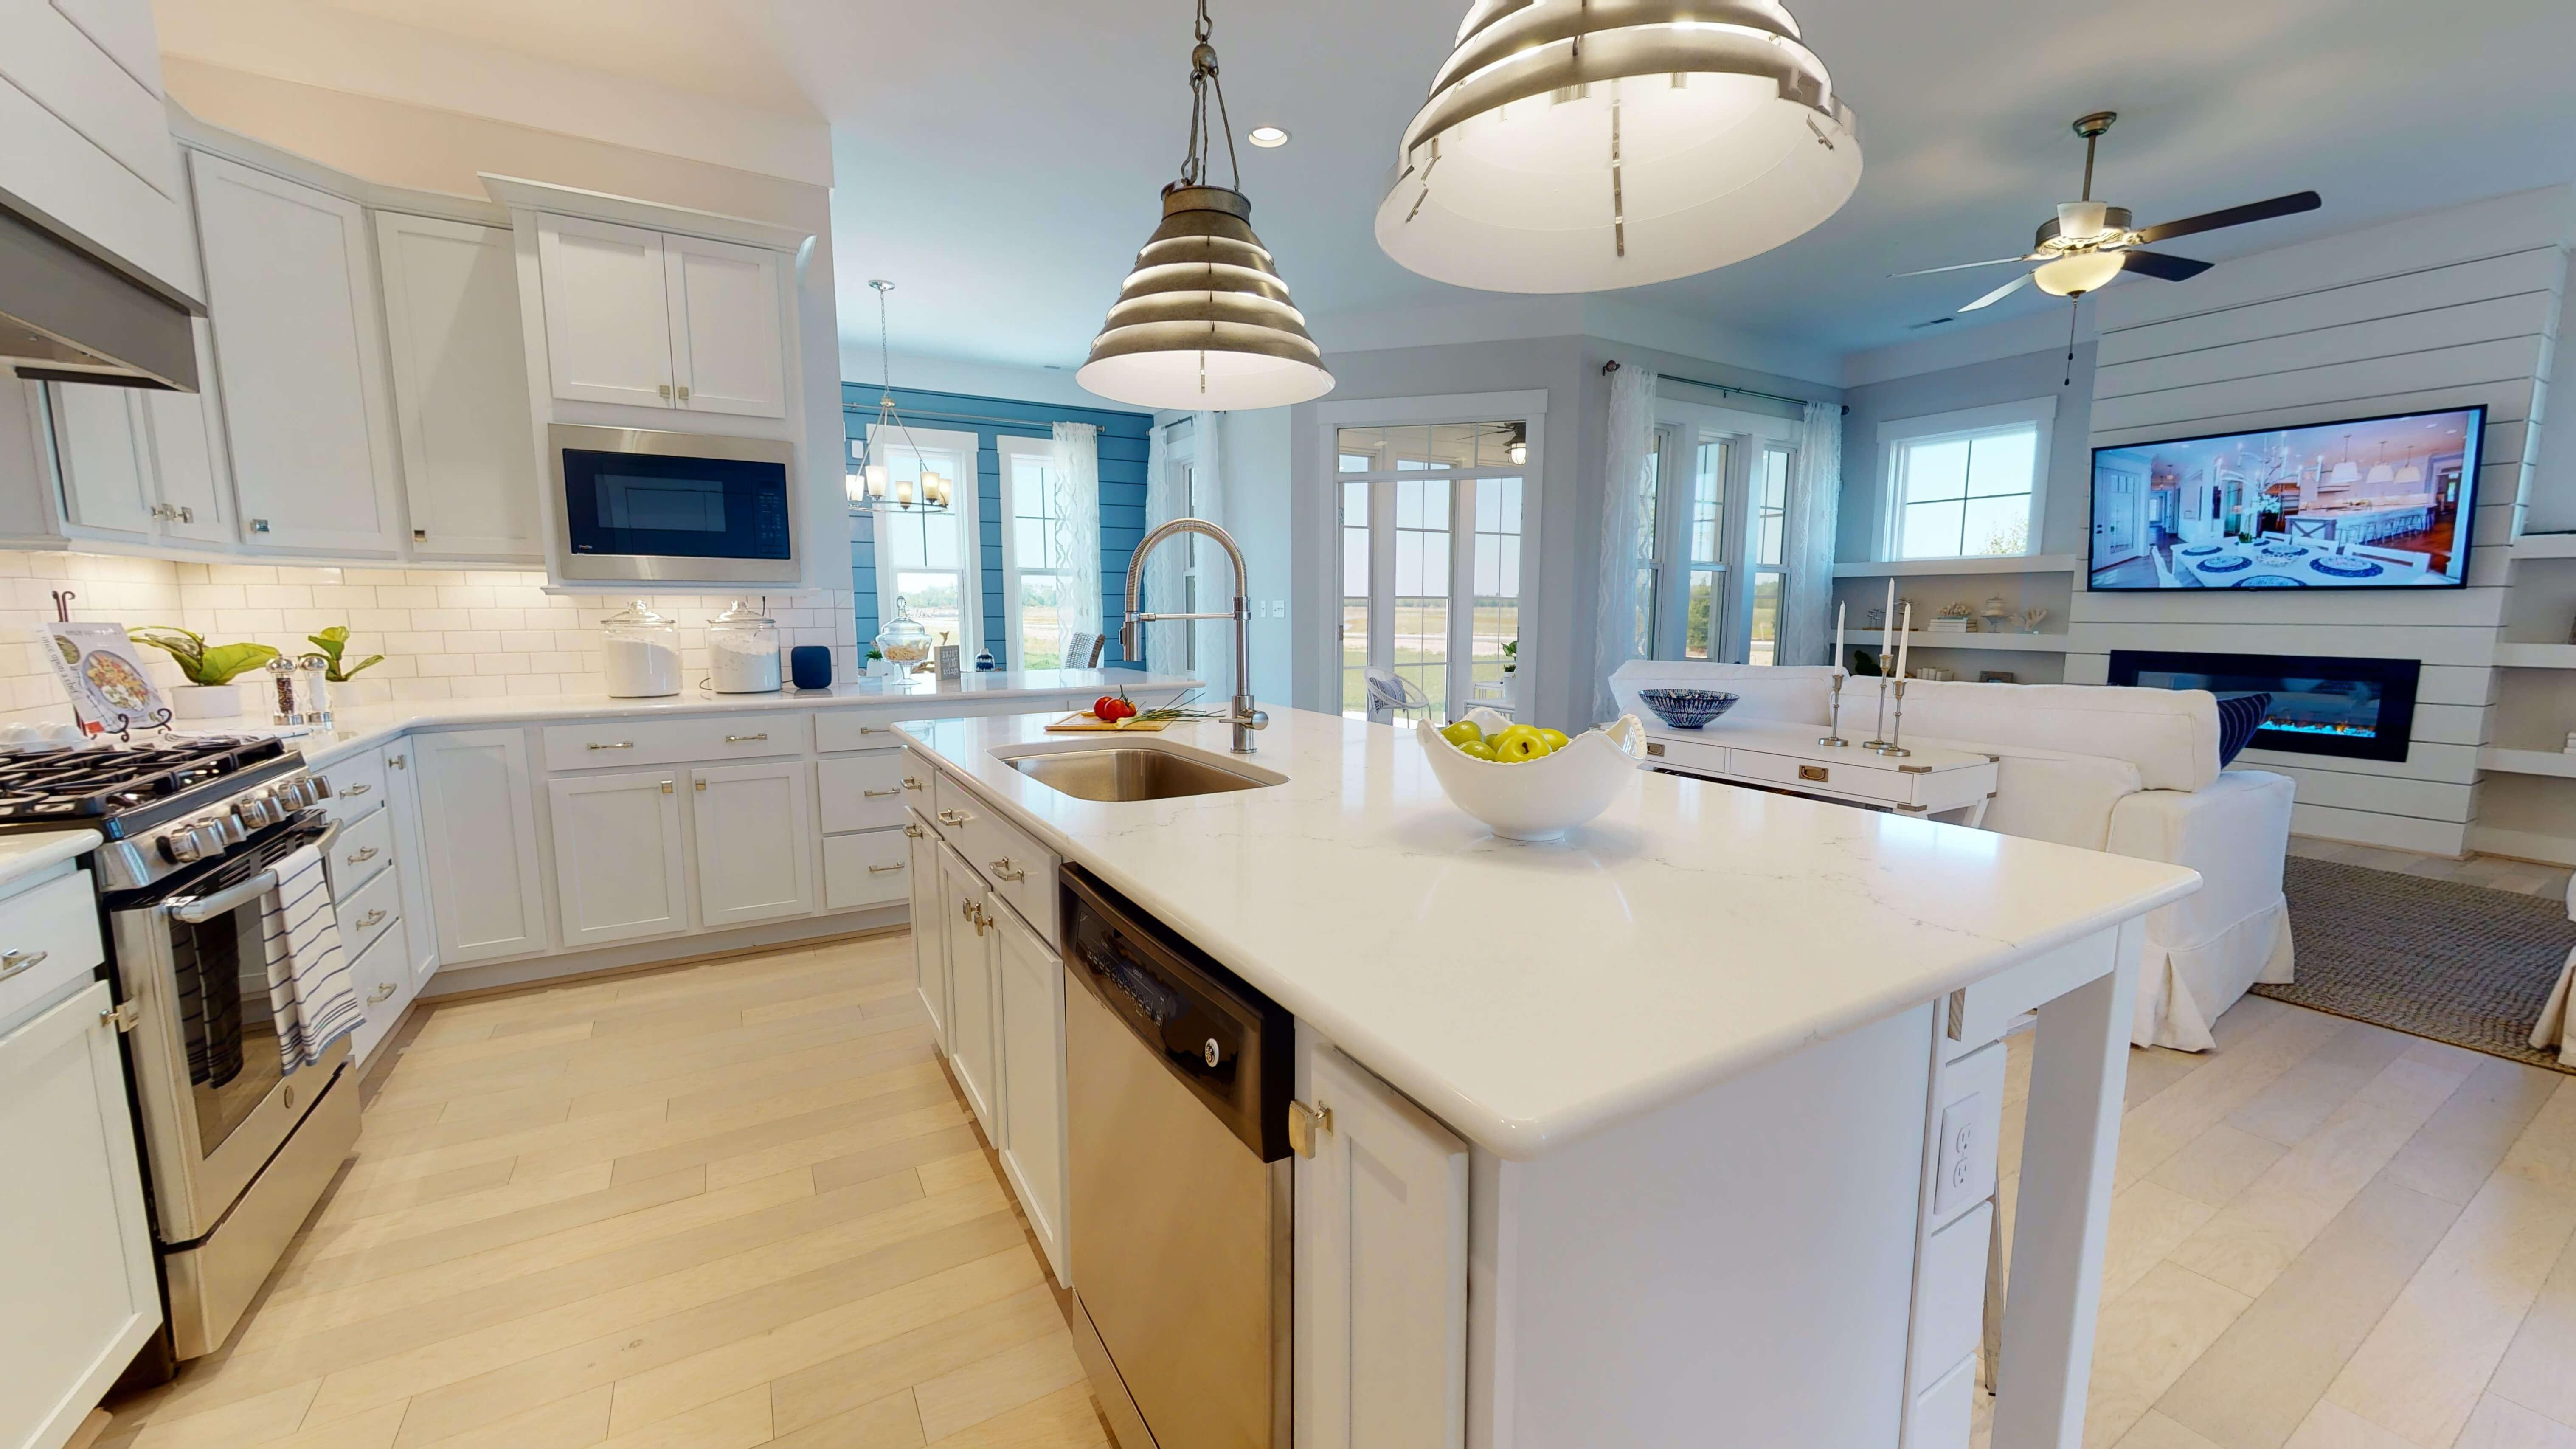 Kitchen featured in The Caramel By Stephen Alexander Homes in Outer Banks, NC